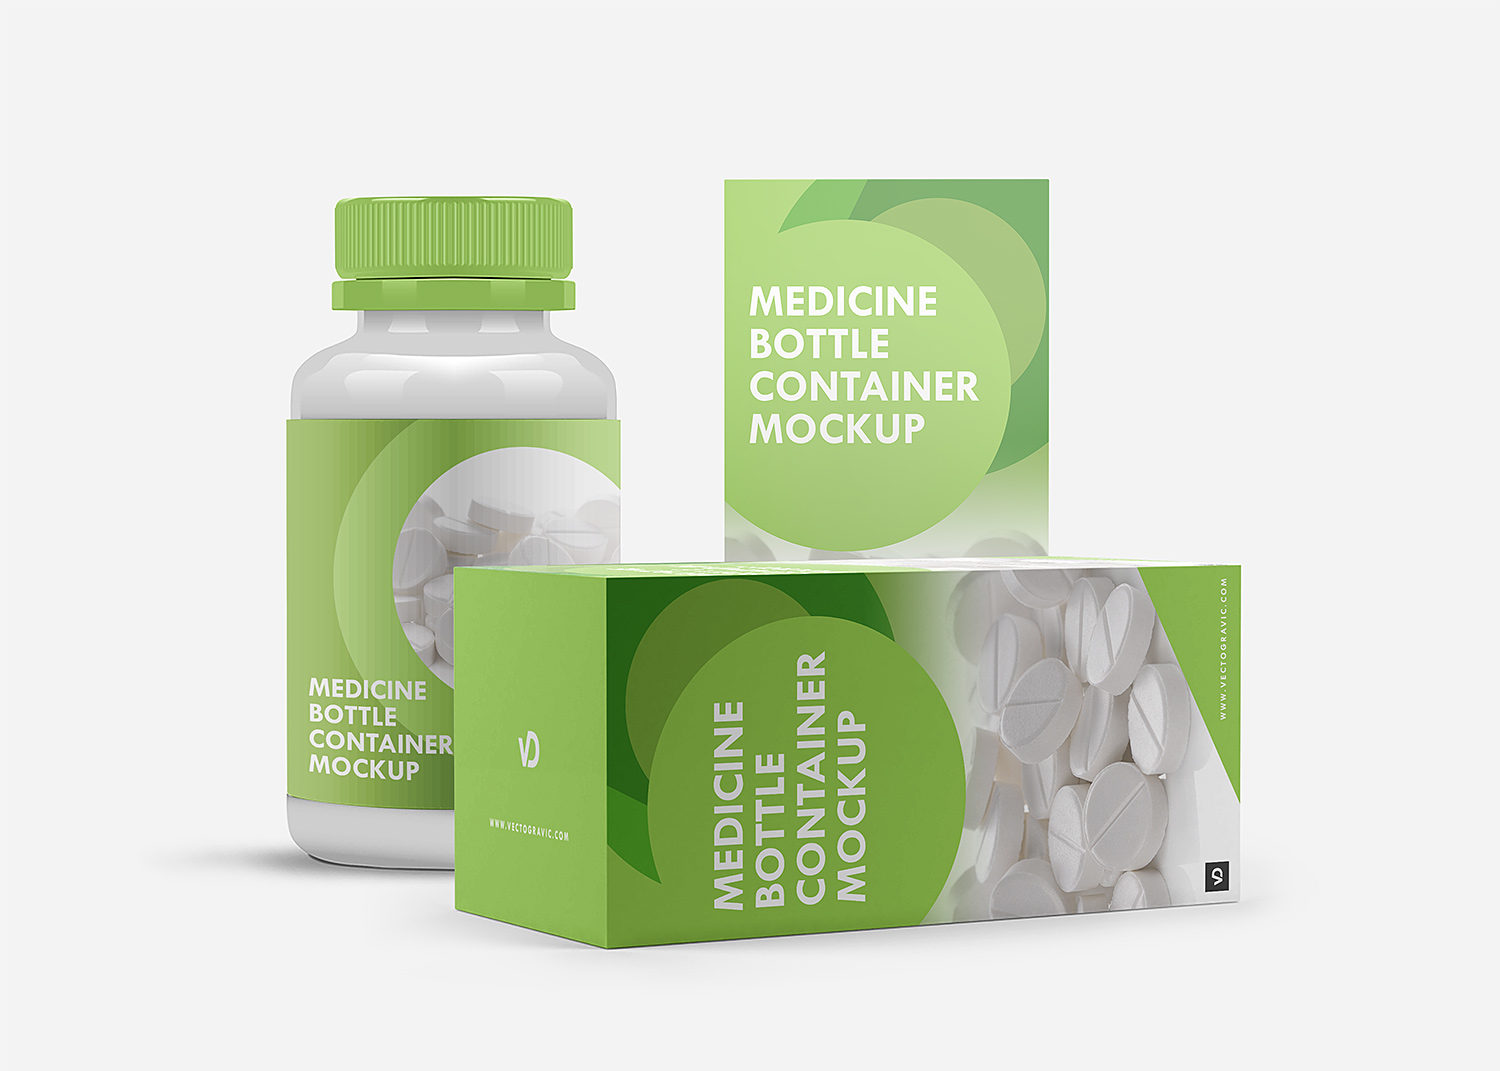 Medicine Bottle Container and Box Mockup